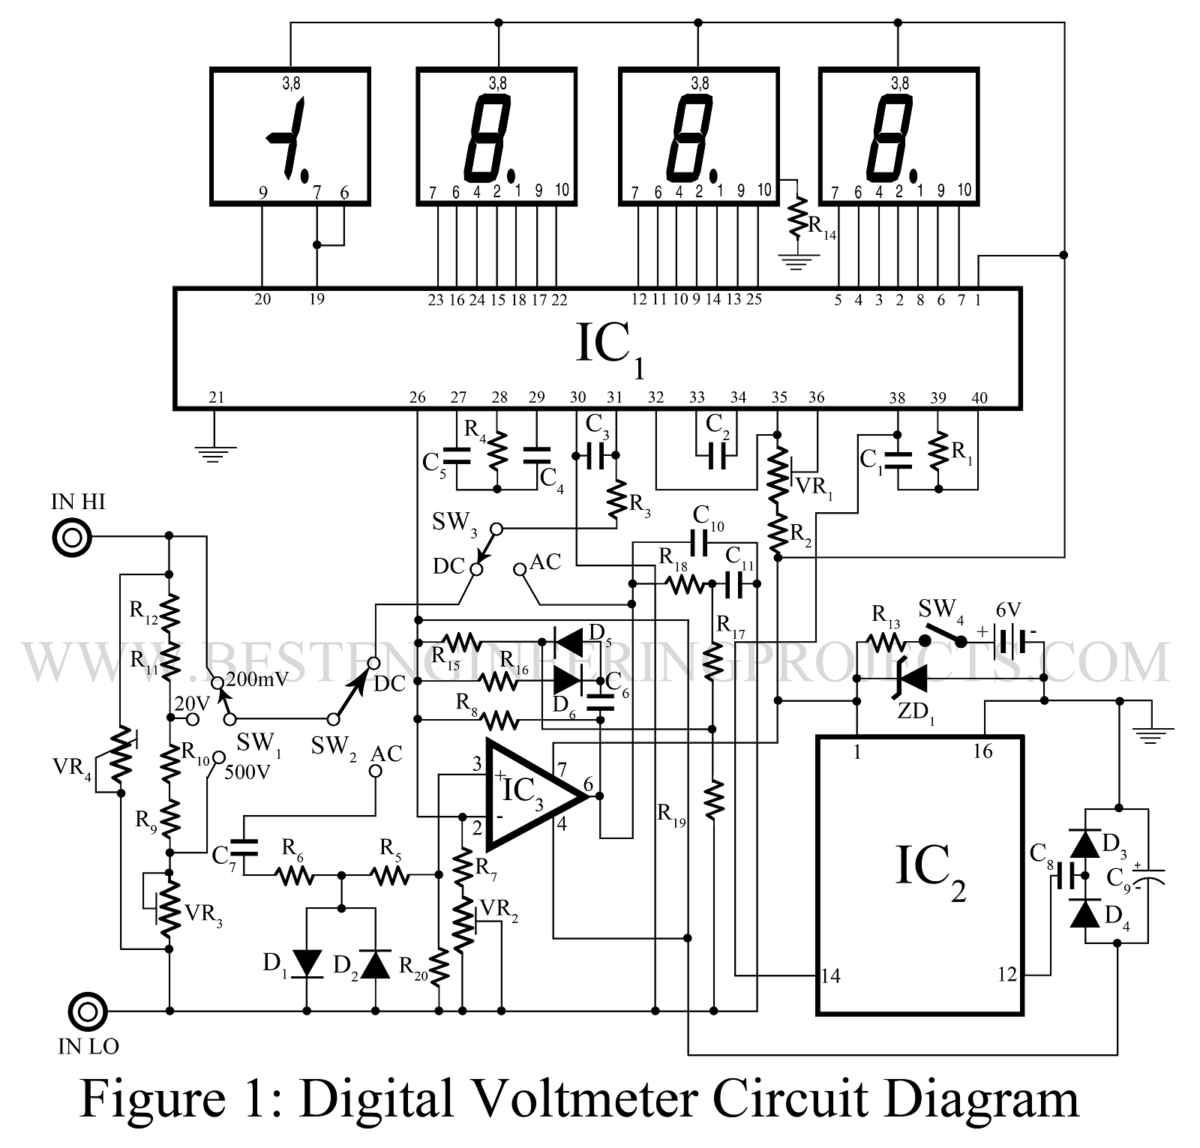 hight resolution of digital voltmeter dvm circuit using icl 7107 best engineering projects